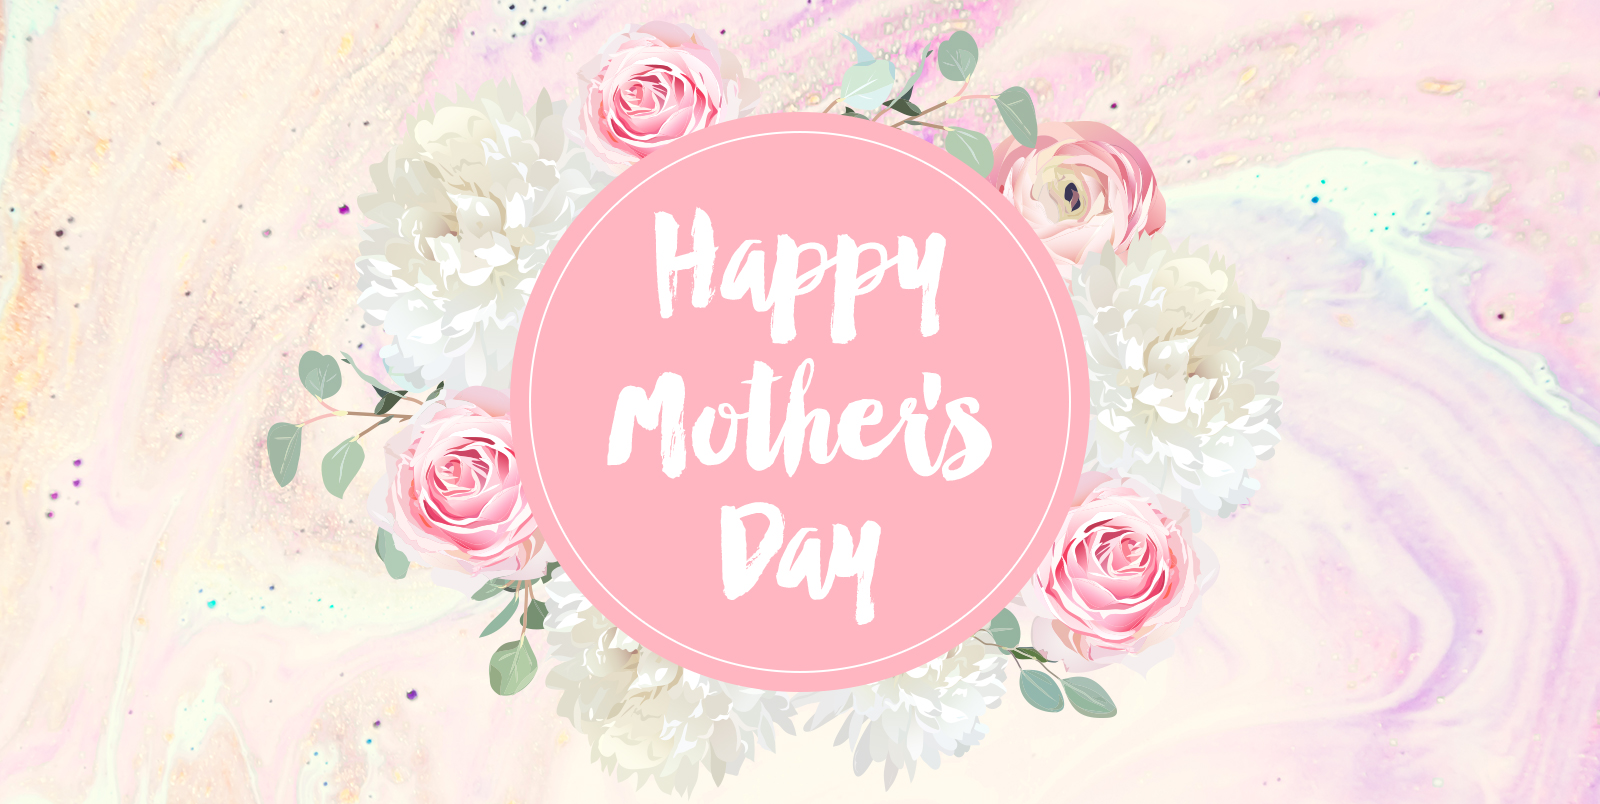 201805_ThePulse_MothersDay_1600x804.jpg